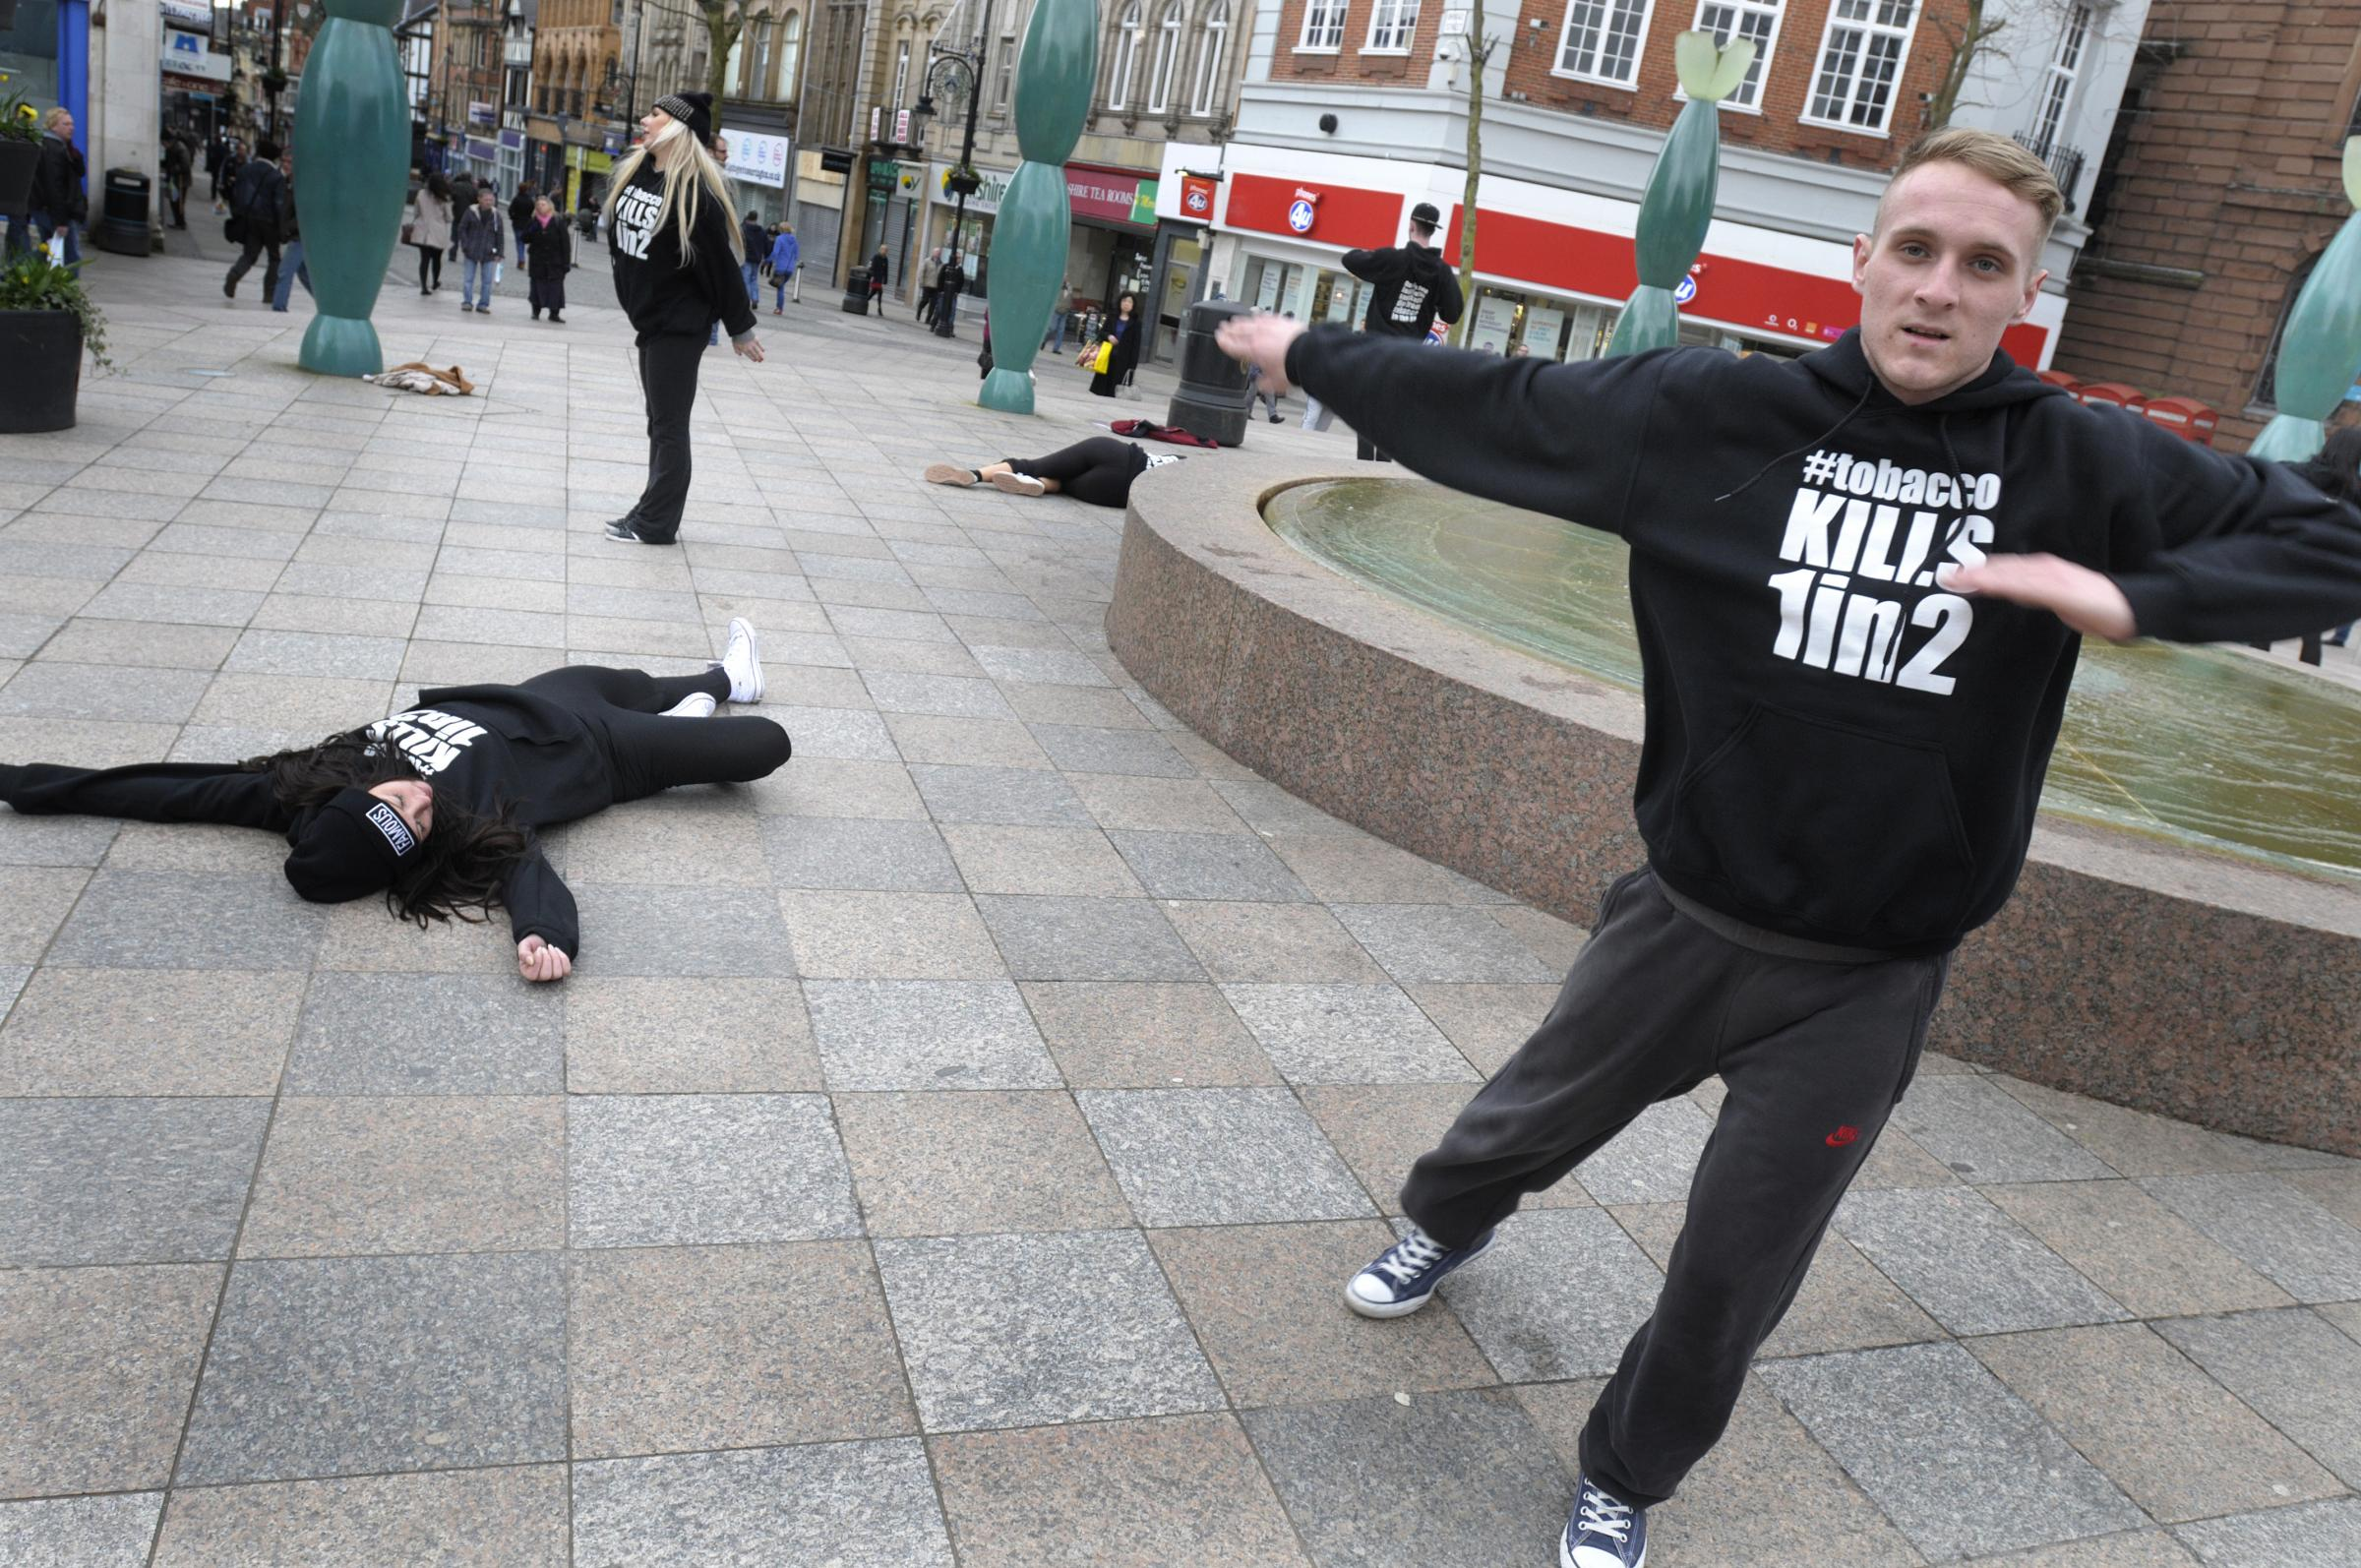 Street dancers in town centre anti-smoking campaign